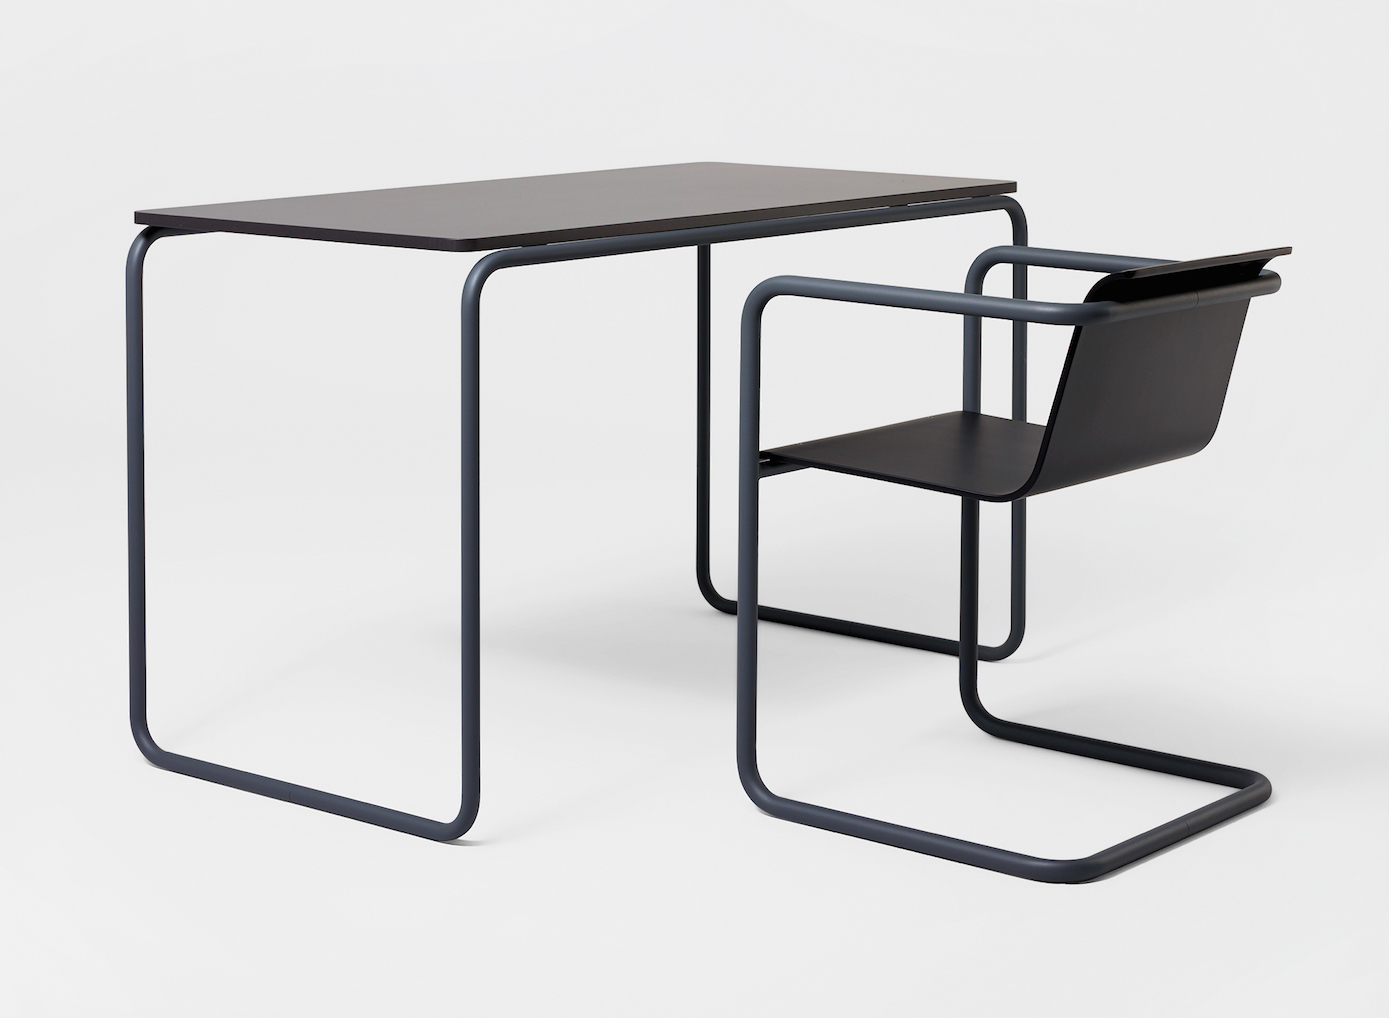 Konstantin Grcic, Pipe table and chair, 2009, Collection Vitra Design Museum. Photo: Florian Böhm.